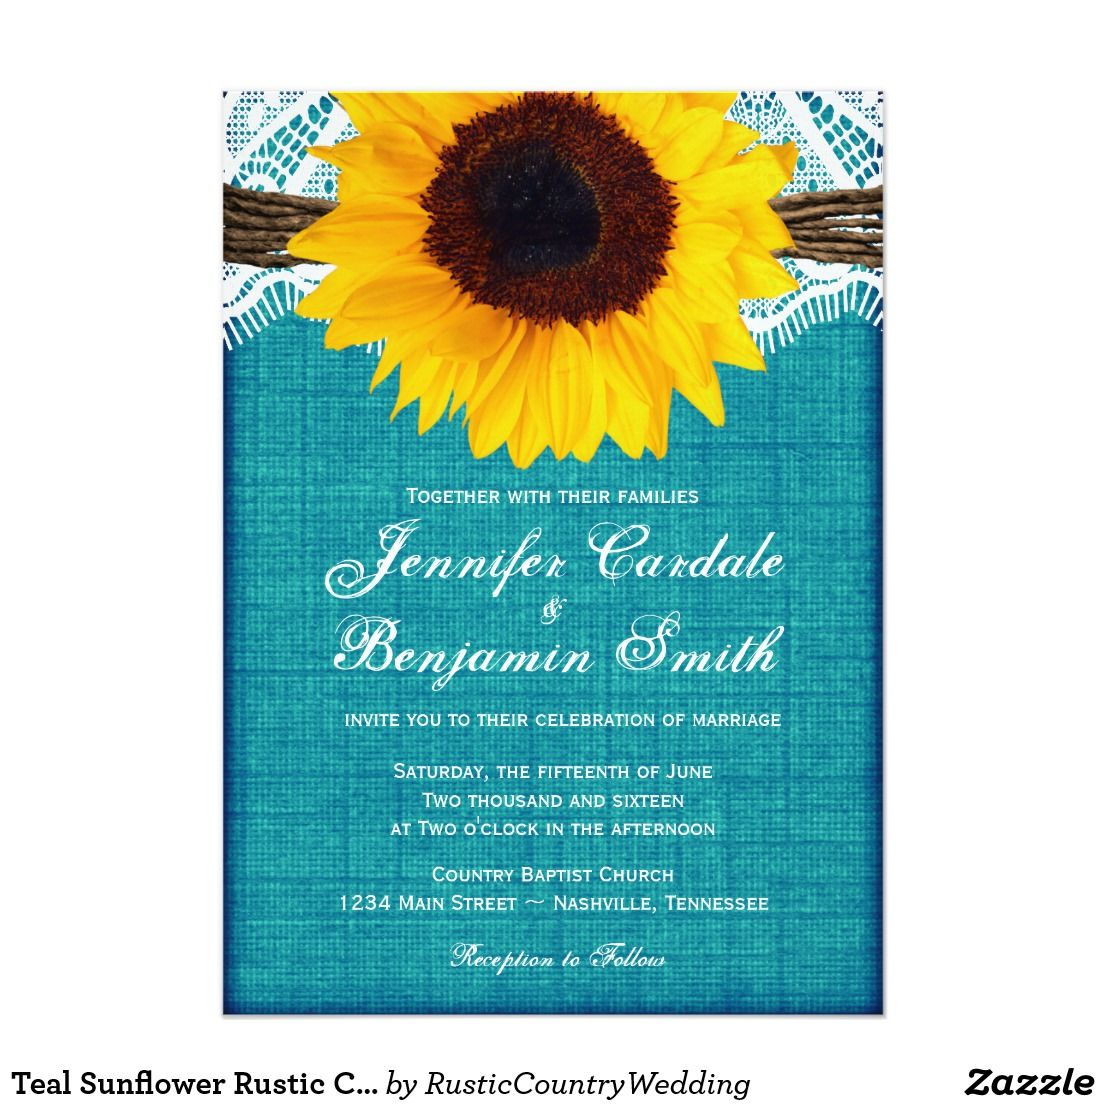 Teal Sunflower Rustic Country Wedding Invites Yellow Sunflower